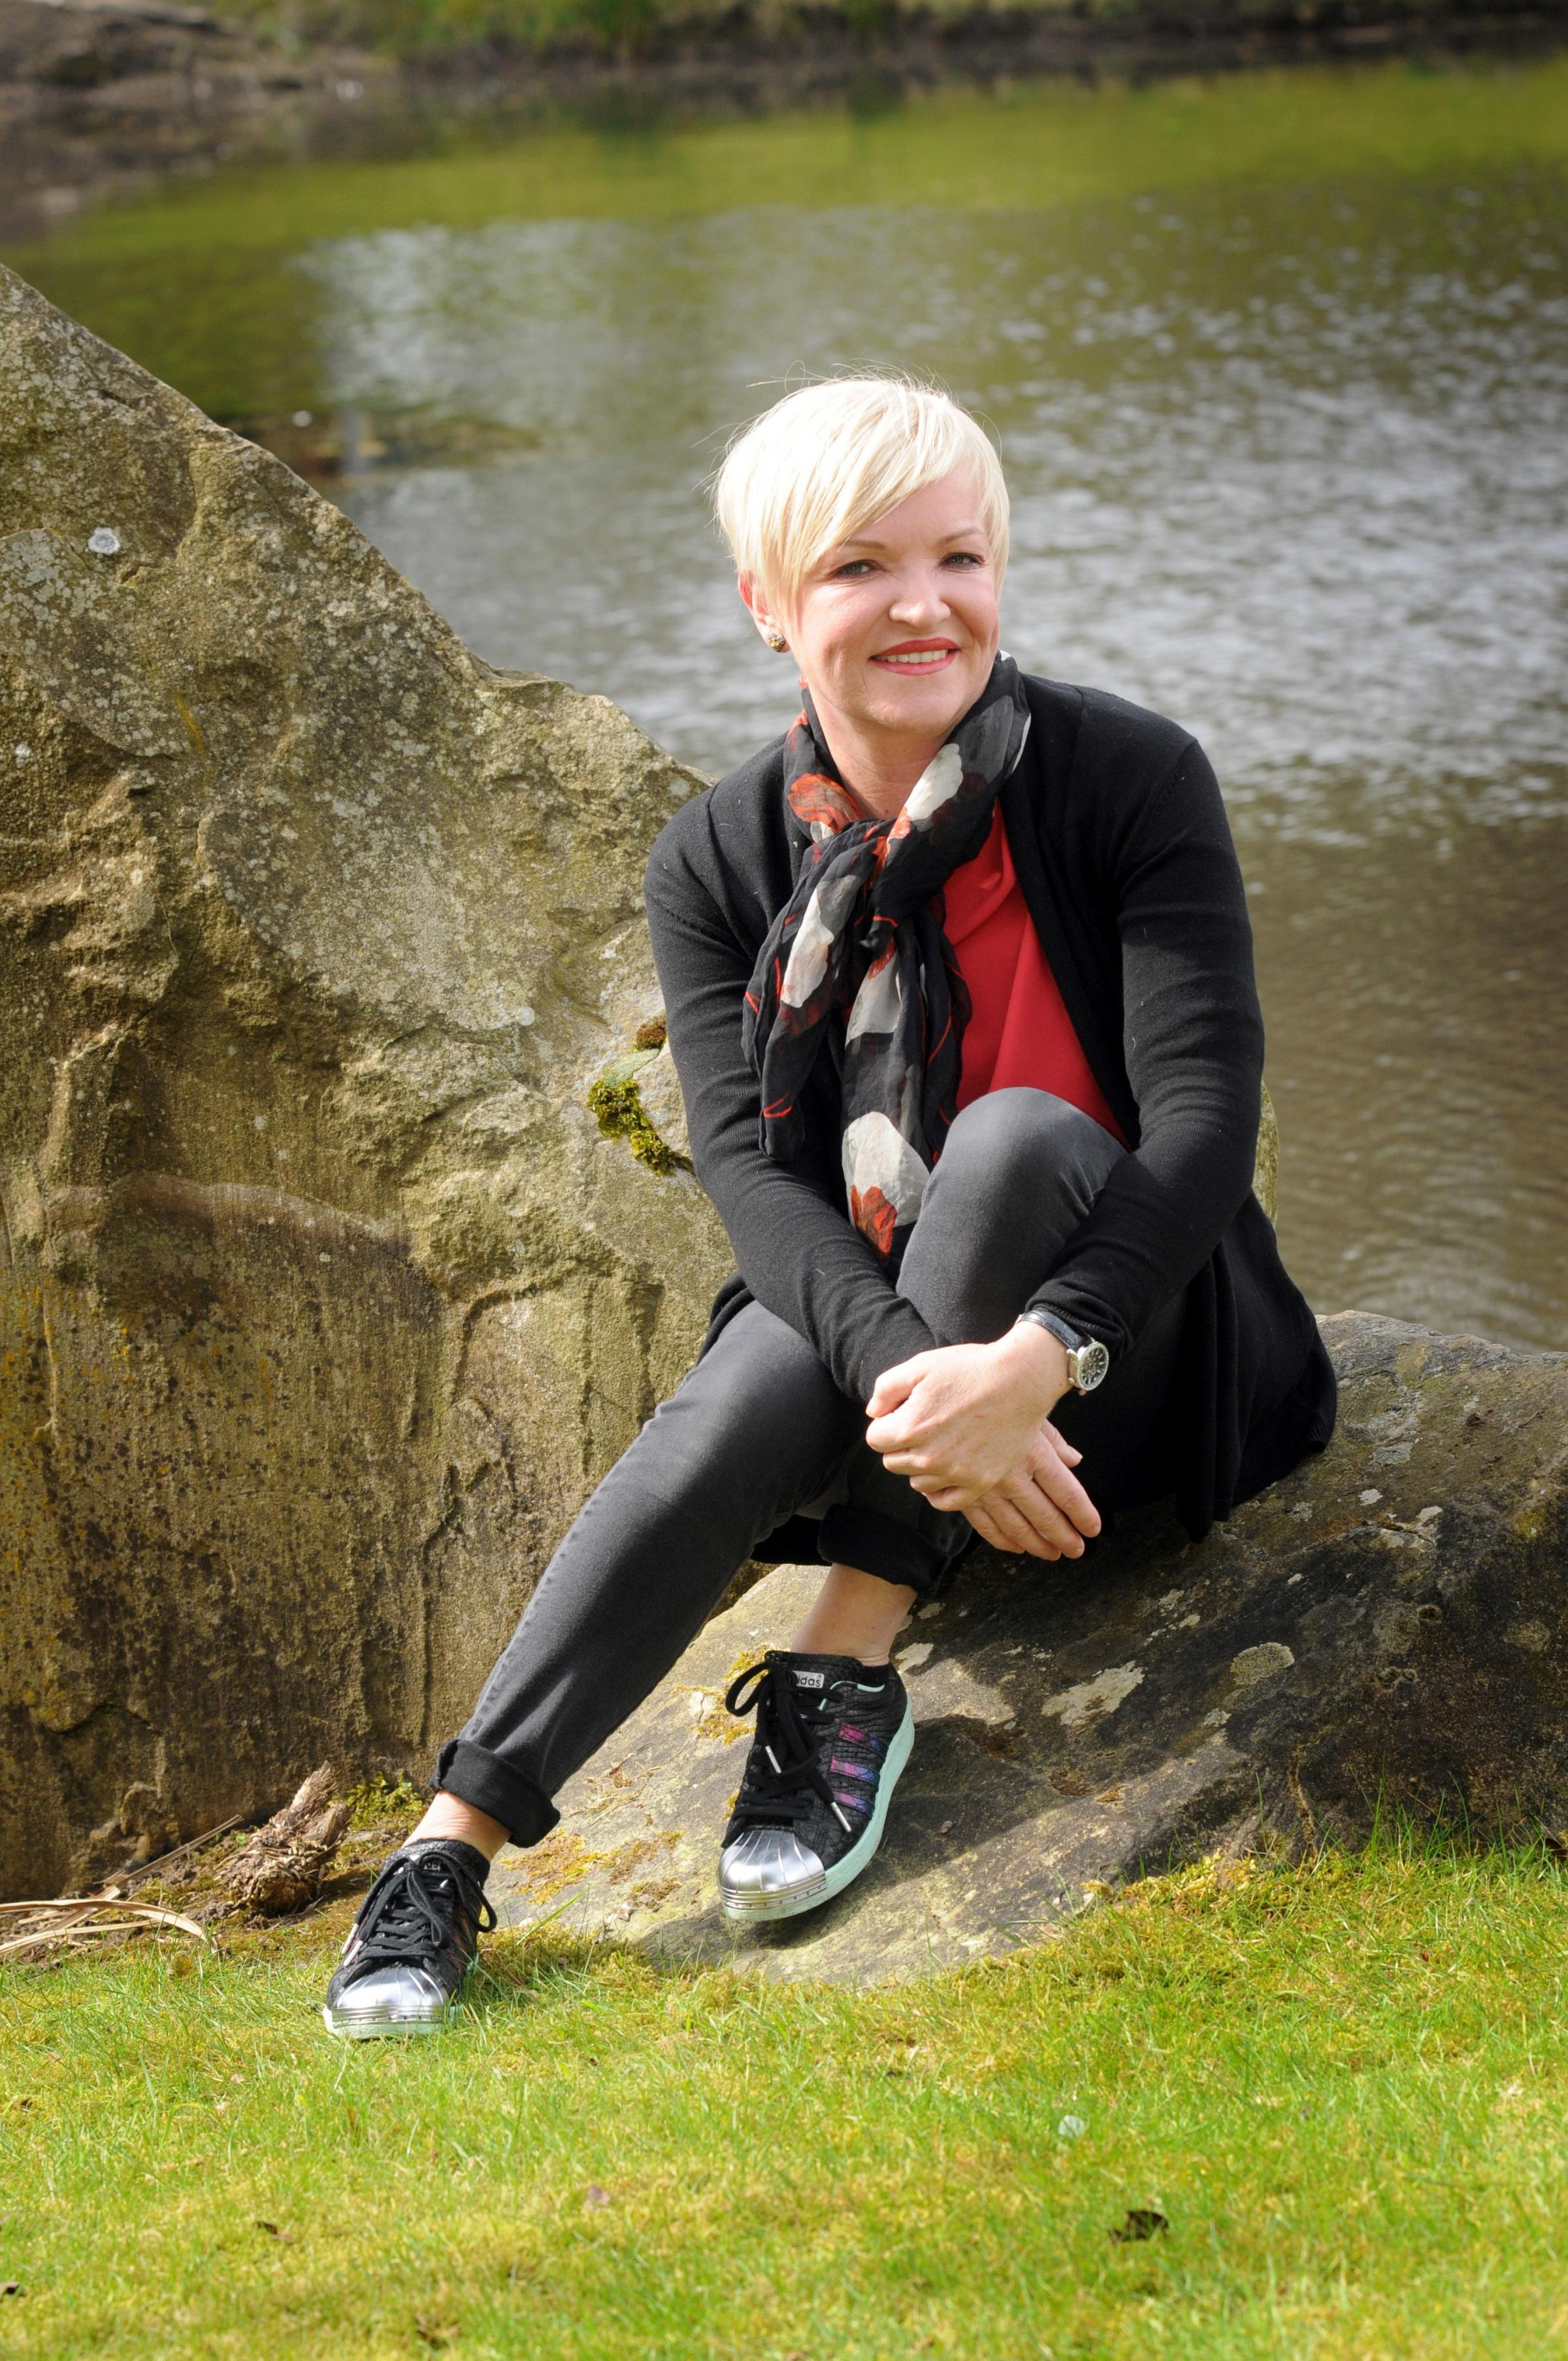 BLOG: 'Perception can make or break you when you're battling cancer'